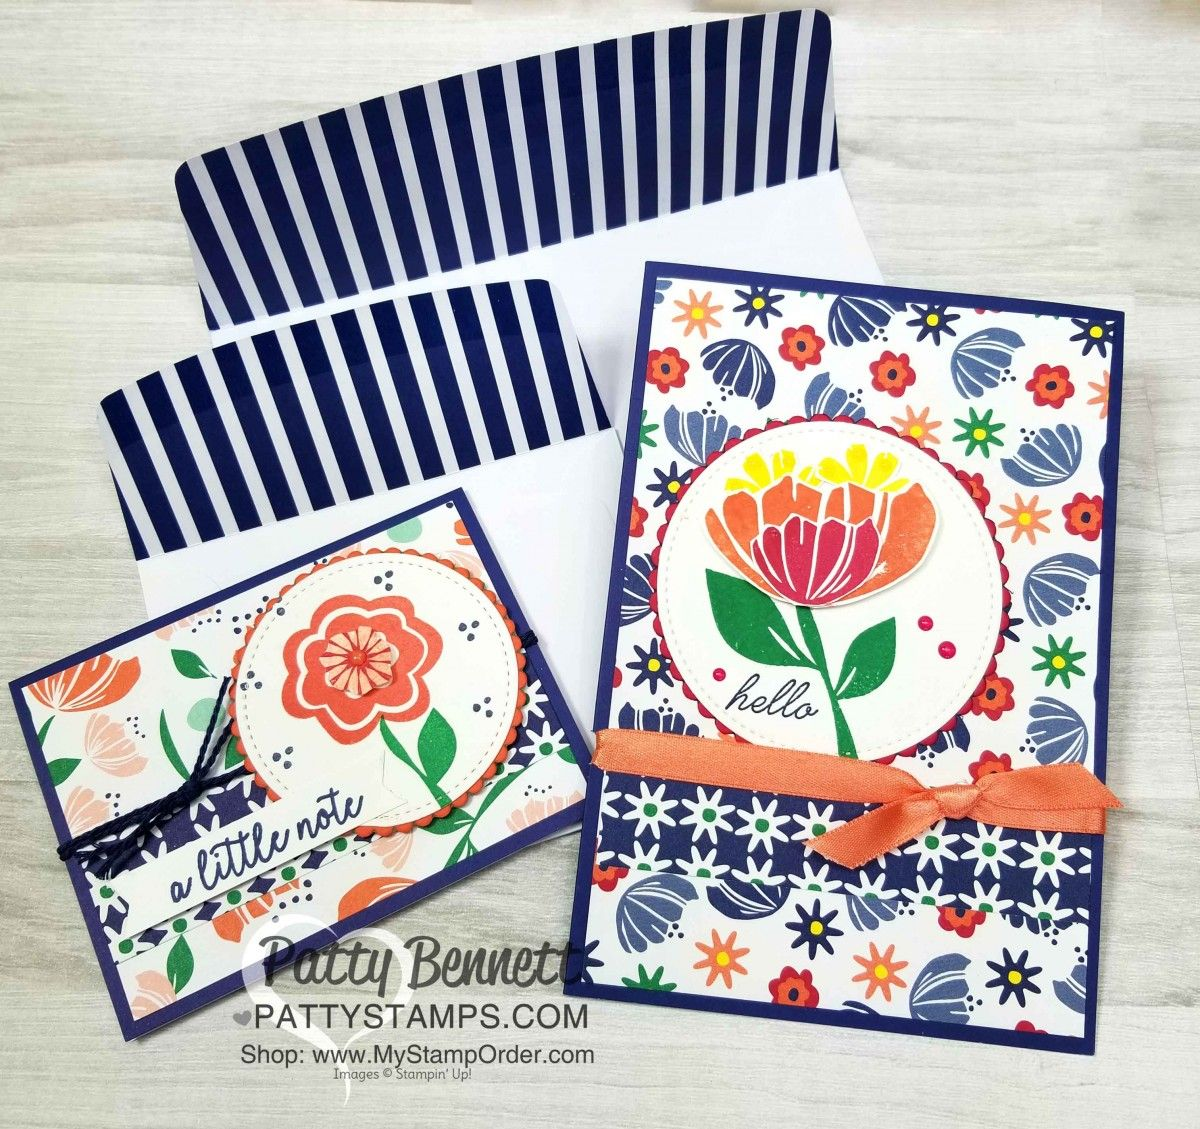 Happiness Blooms Memories And More Cards Created With Stampin Up Card Pack Envelope Featuring Bloom By Stamp Set